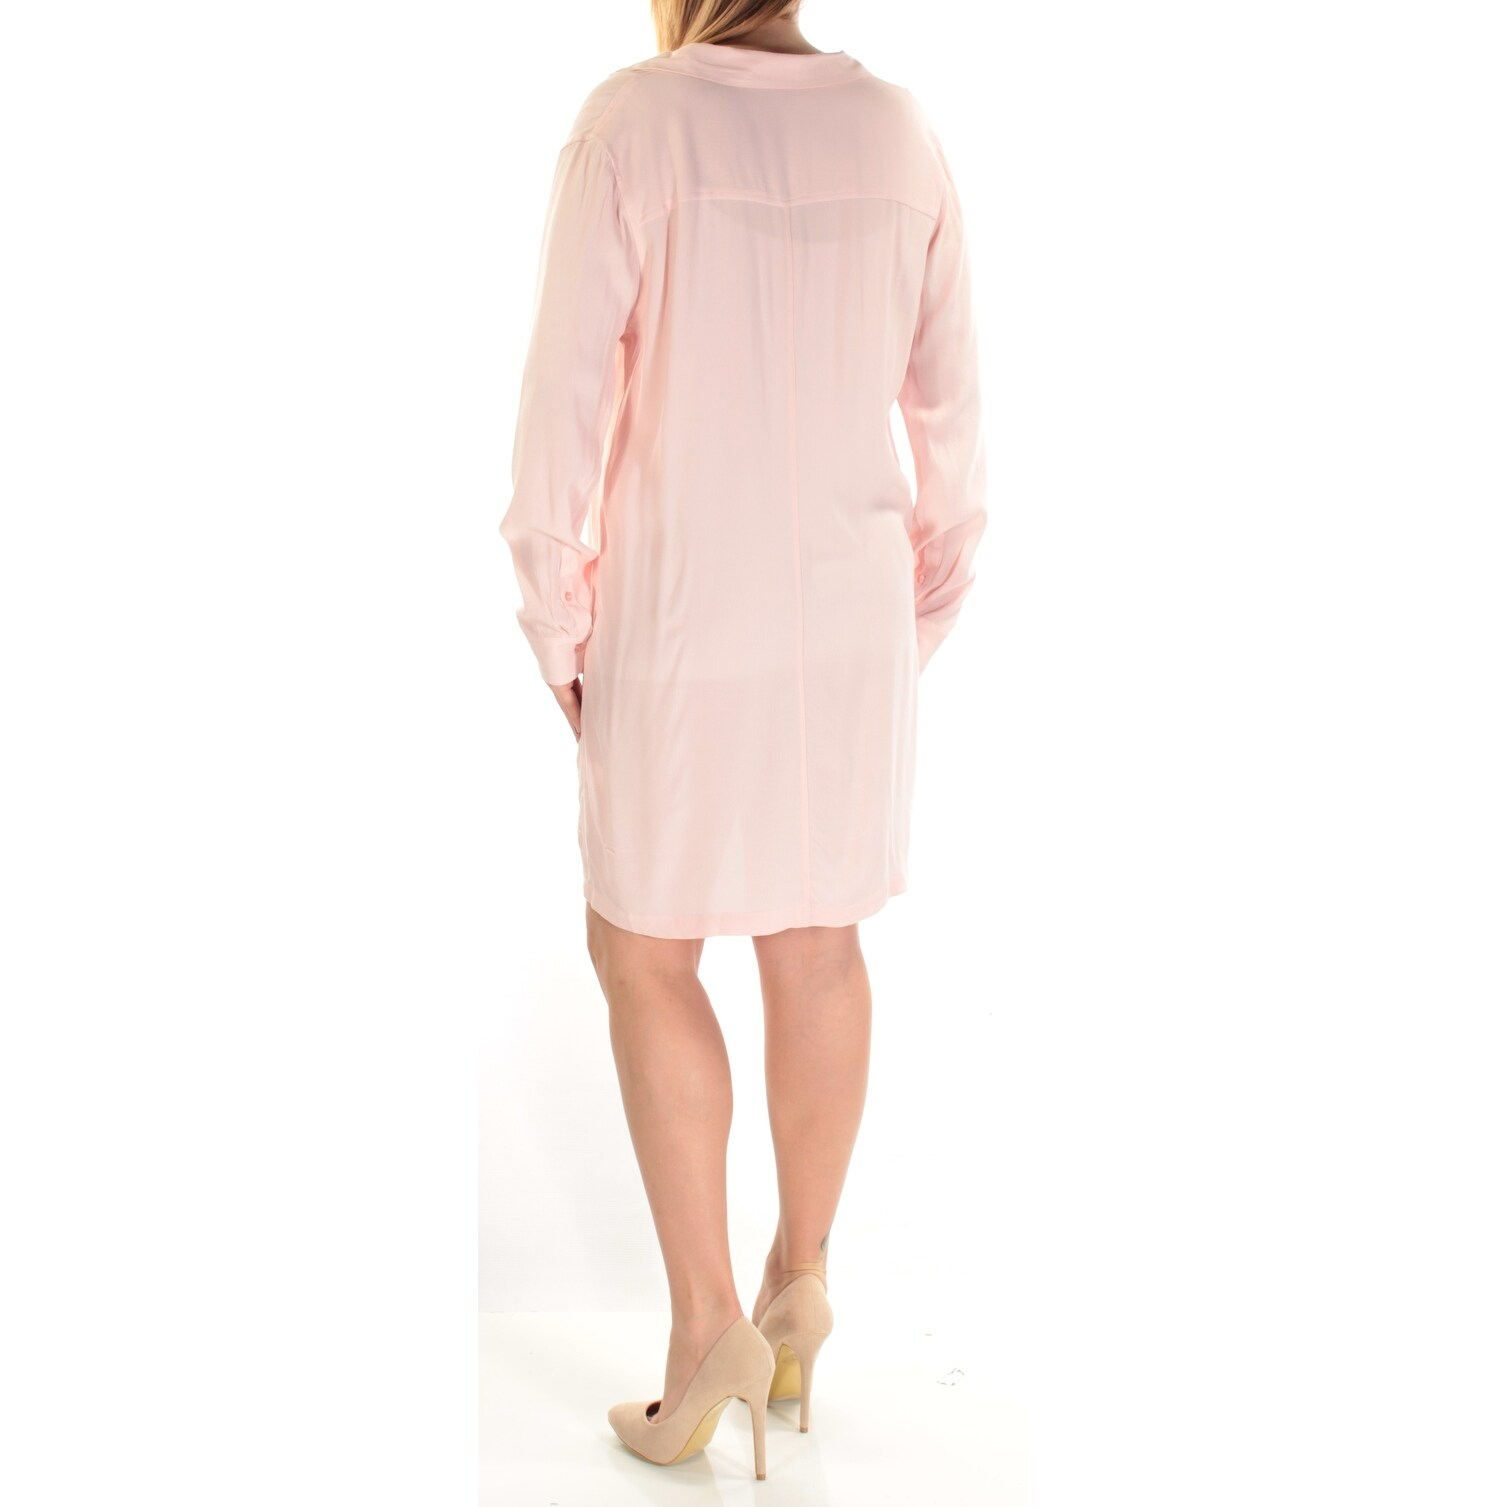 f49efd3ea STATE Womens Pink Lace Up Cuffed Collared Above The Knee Shift Wear To Work  Dress Size: L - On Sale - Free Shipping On Orders Over $45 - Overstock - ...